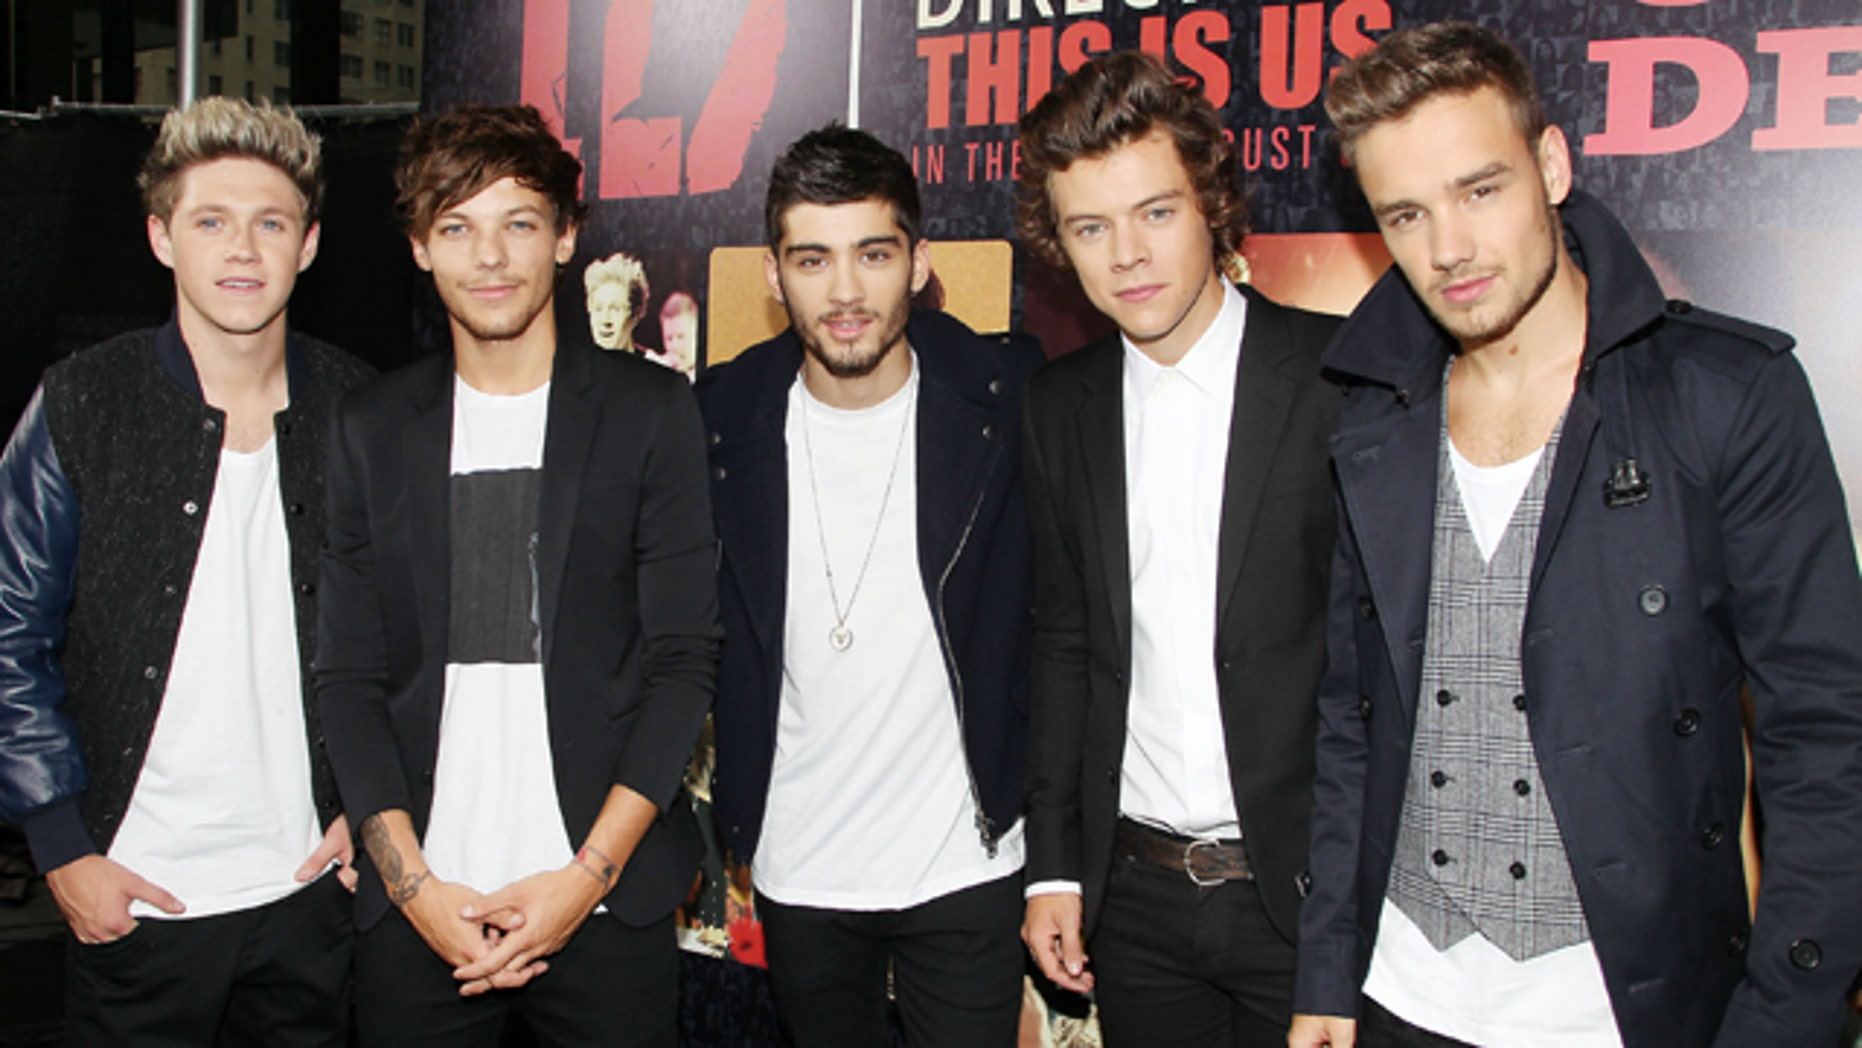 """Aug. 26, 2013: Members of One Direction, from left, Niall Horan, Louis Tomlinson, Zayn Malik, Harry Styles, and Liam Payne at the  premiere of the film """"One Direction:This Is Us,"""" at the Ziegfeld Theatre in New York."""